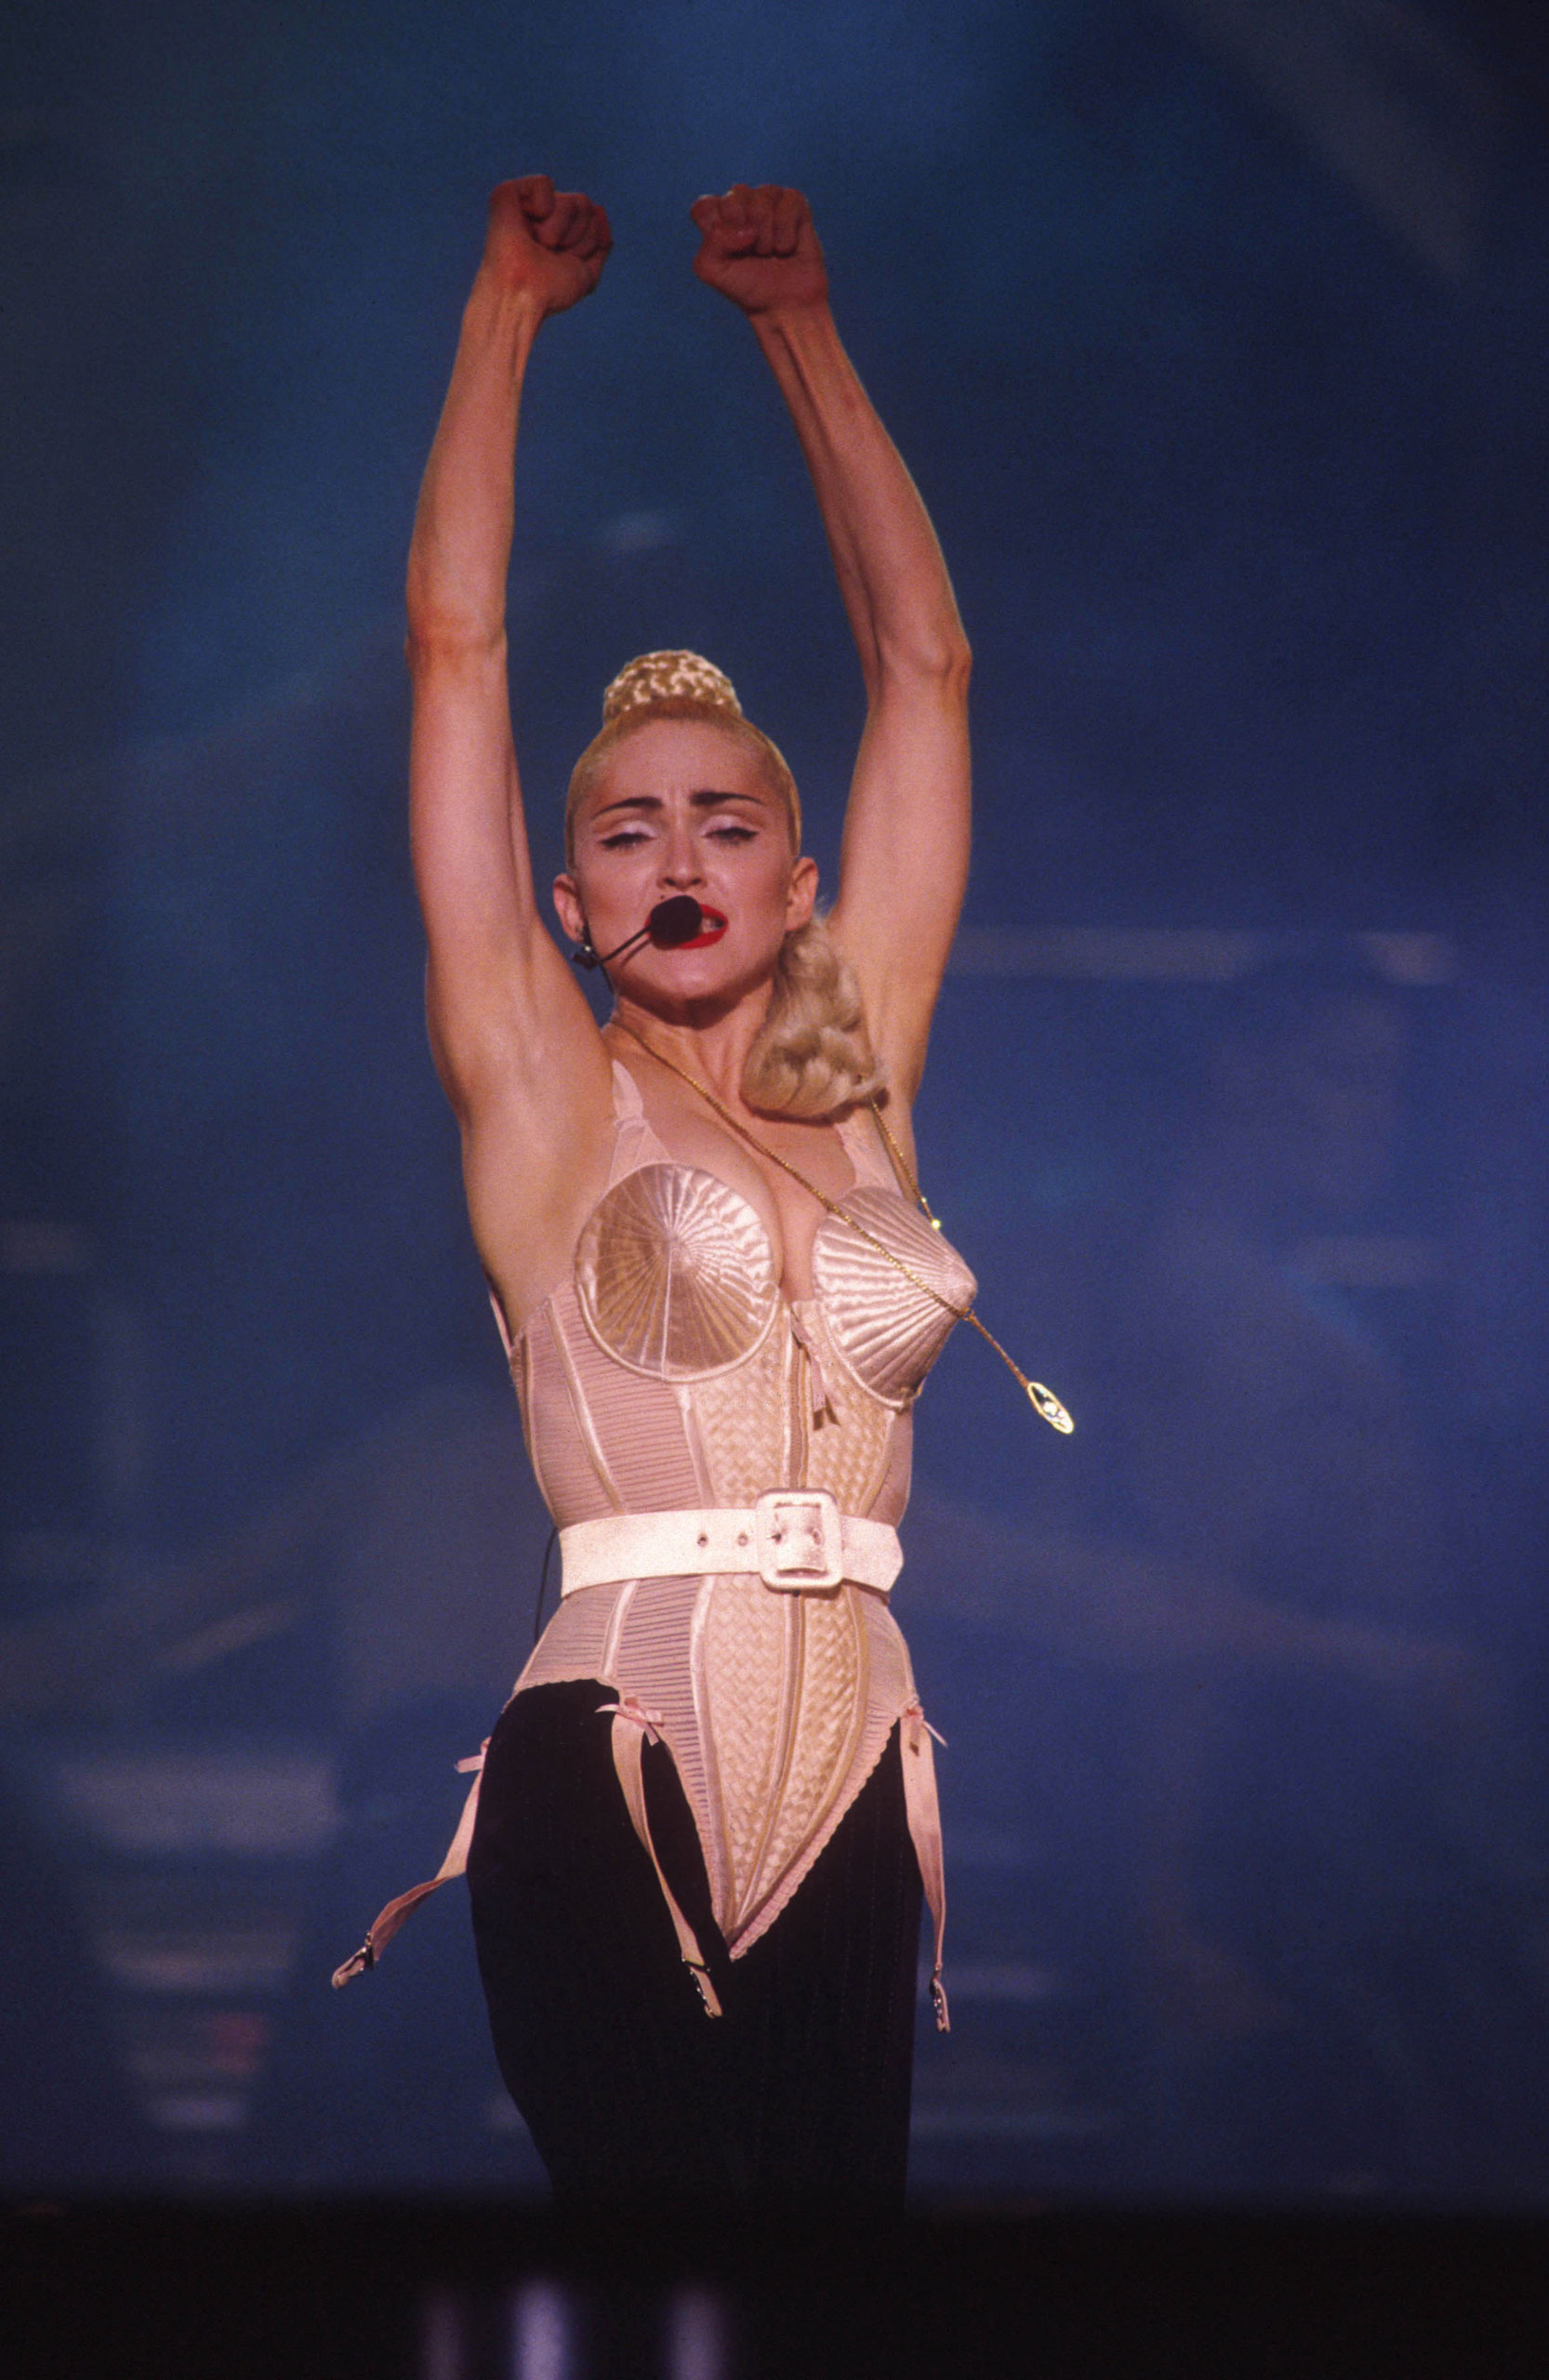 Madonna's Cone Bra Created by designer Jean Paul Gaultier for the Material Girl's Blond Ambition tour in 1990, this structured garment a was throwback to the bullet bras and has become one of the star's most memorable looks.